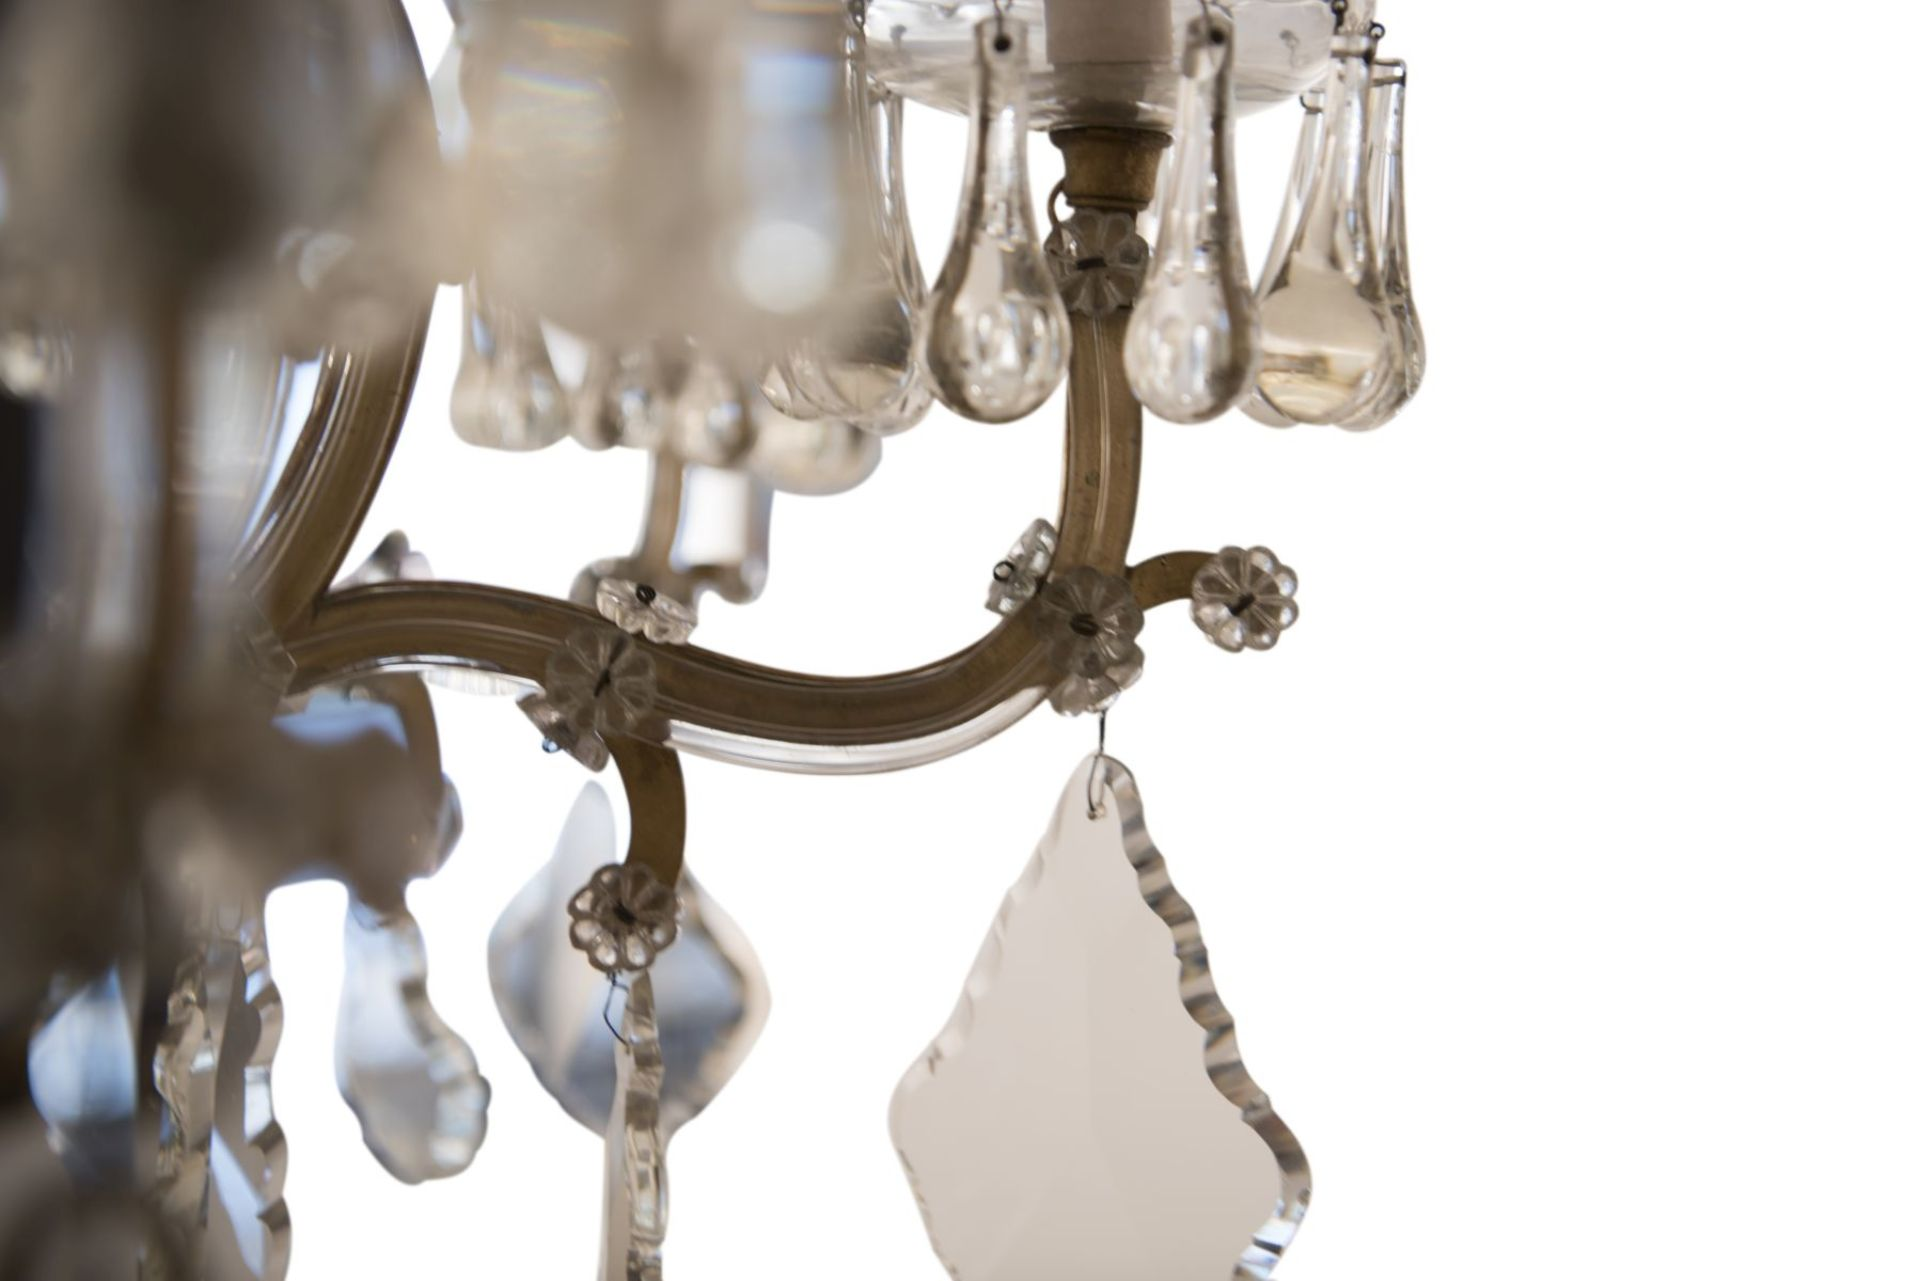 "Decorative Salon Chandelier ""Maria Theresa Style"" - Image 6 of 8"